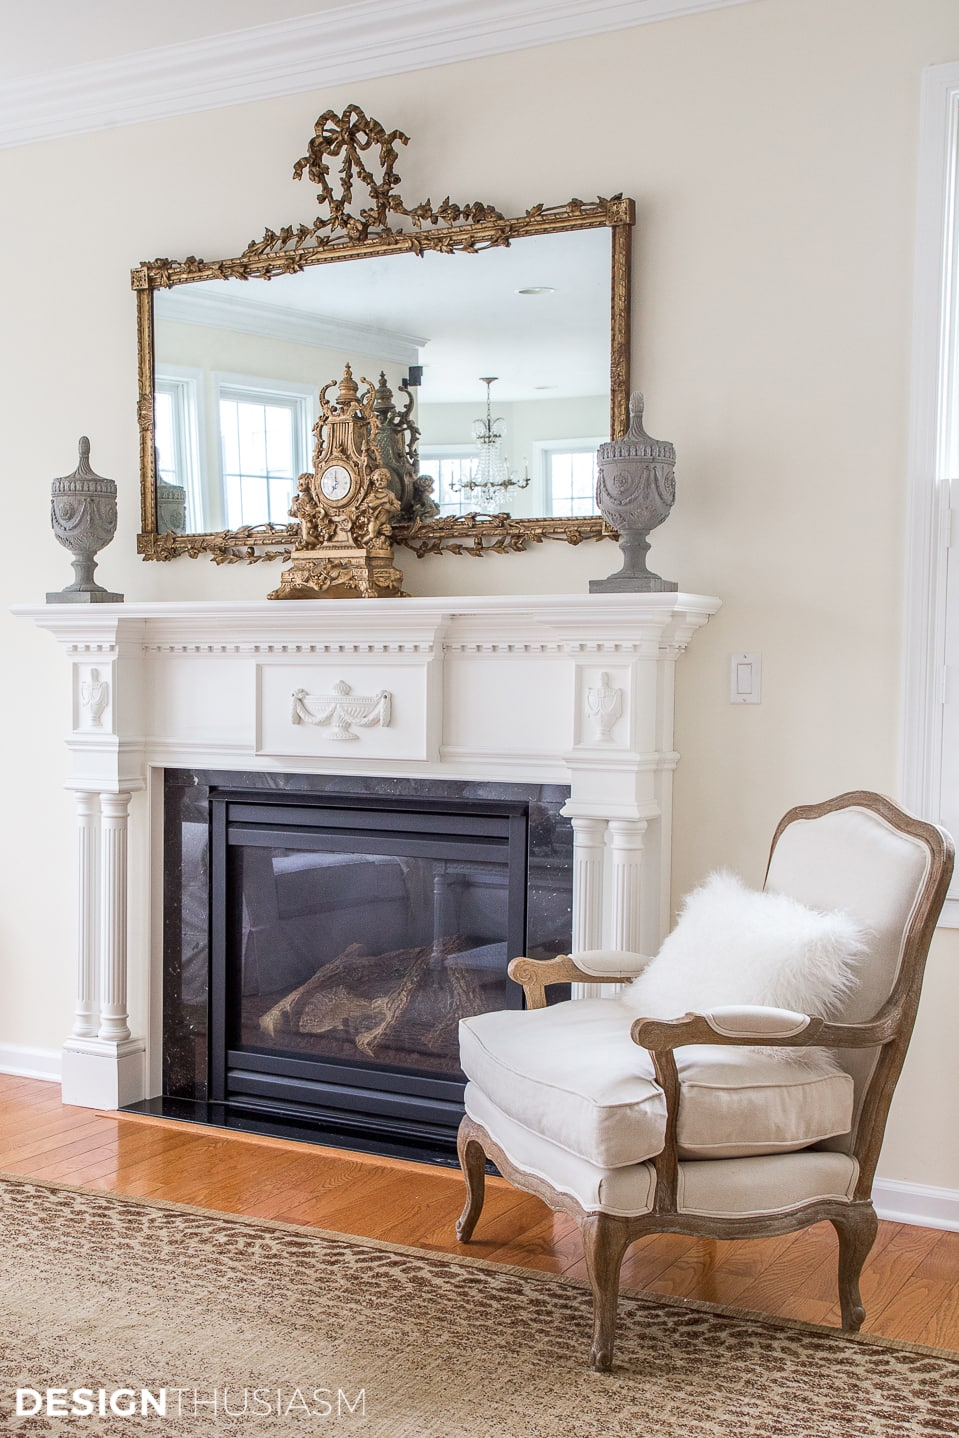 French Chairs to Buy: 3+ Affordable French Country Accent Chairs